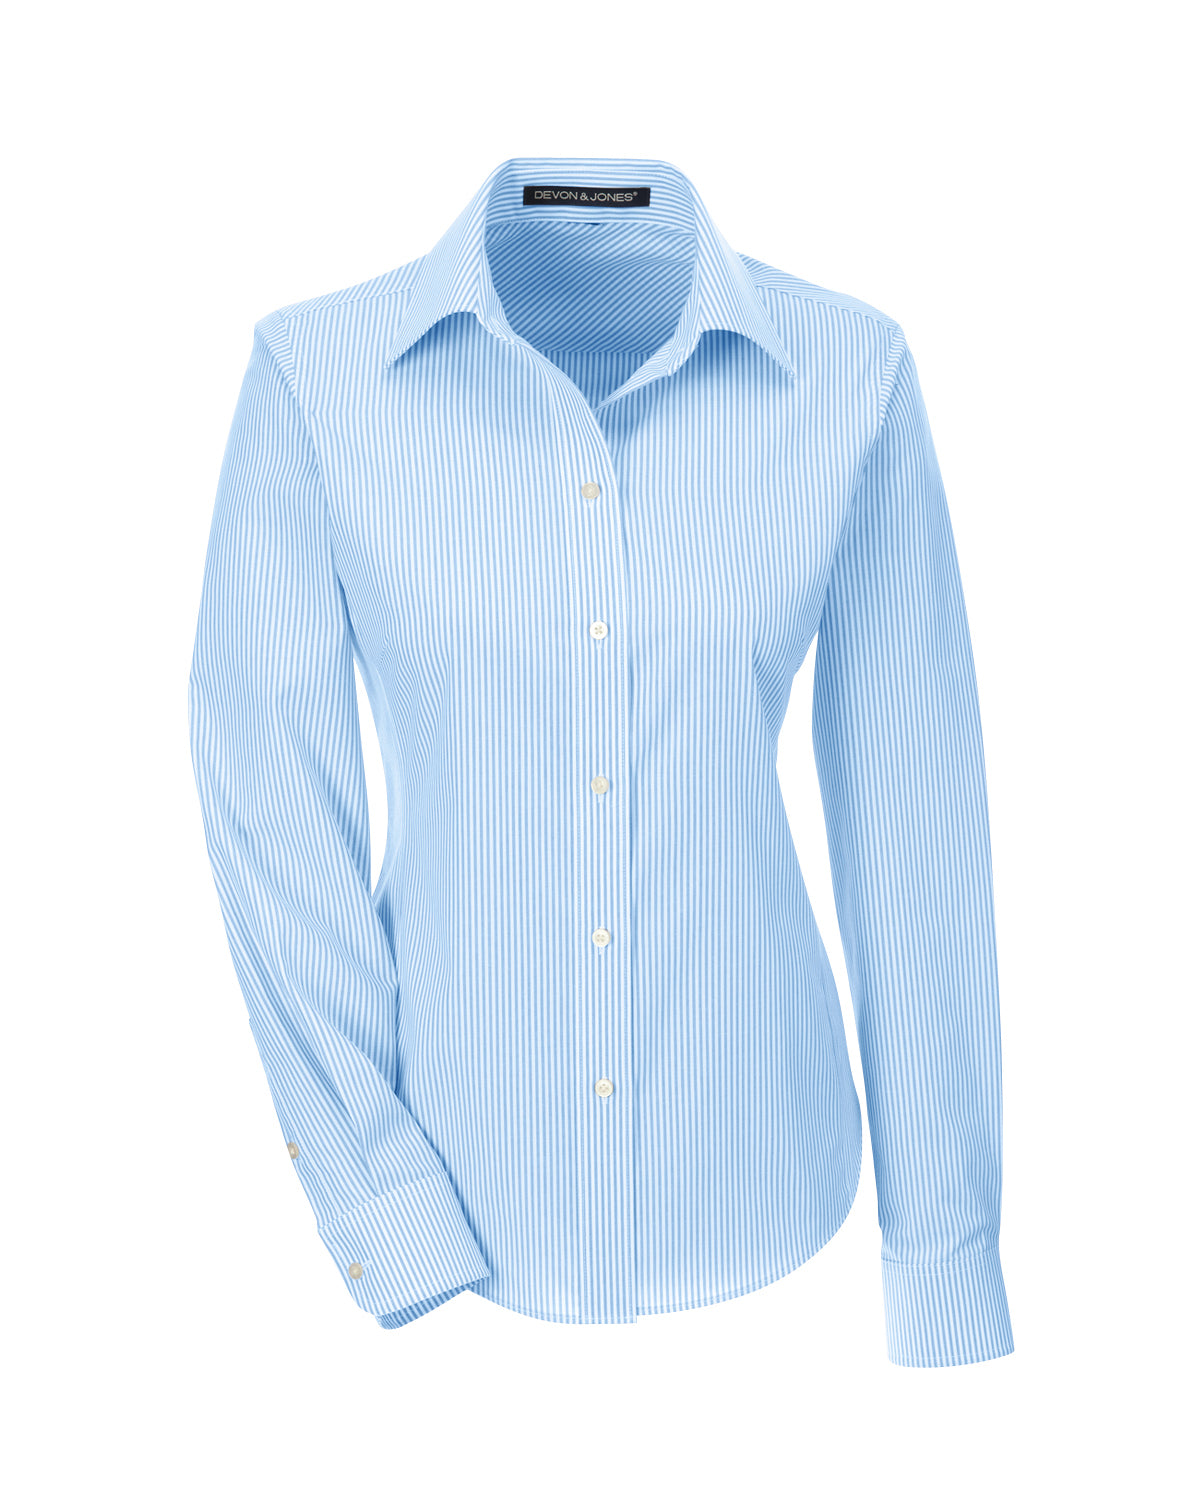 DEVON & JONES LADIES CROWN WOVEN BANKER STRIPE DRESS SHIRT